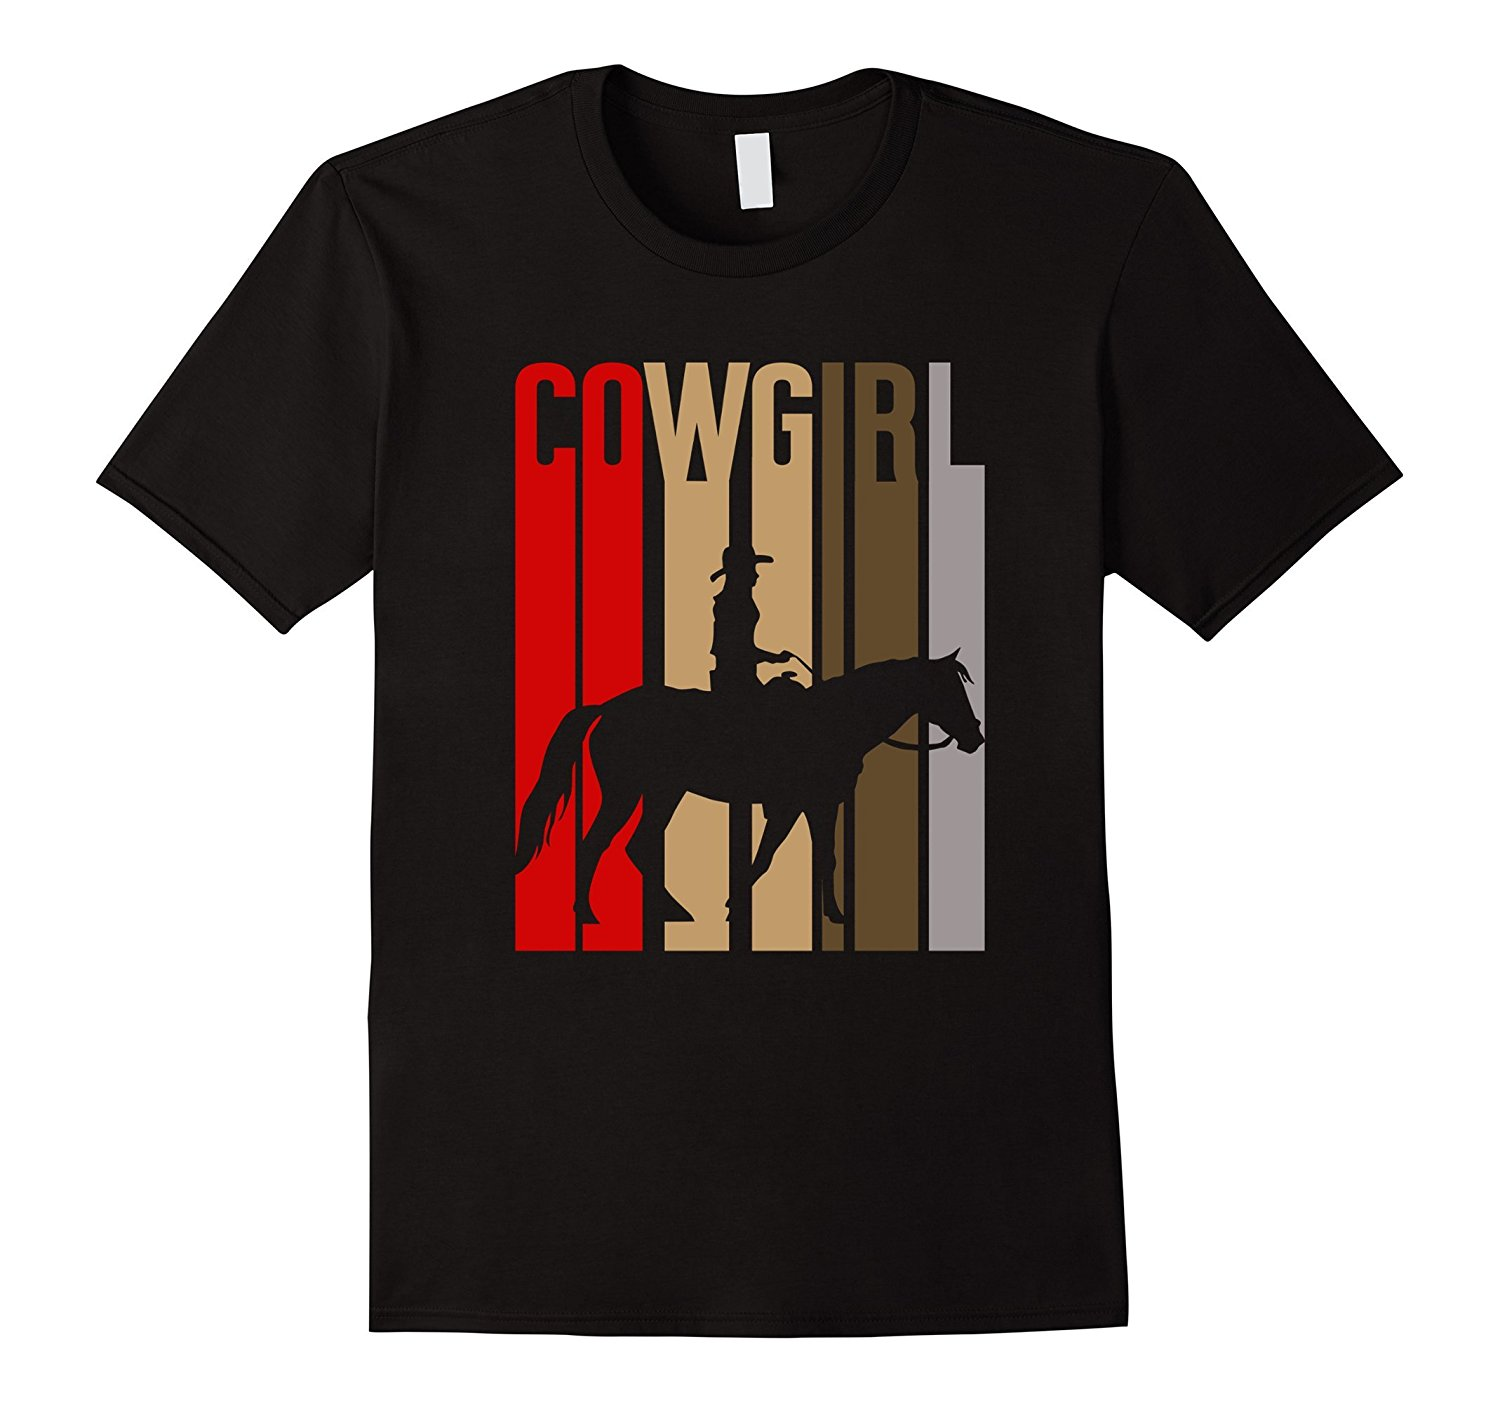 Retro Cowgirl Western T-Shirt with Horse Rider Summer Short Sleeve Shirts Tops S~3Xl Big Size Cotton Tees Summer New Men Cotton